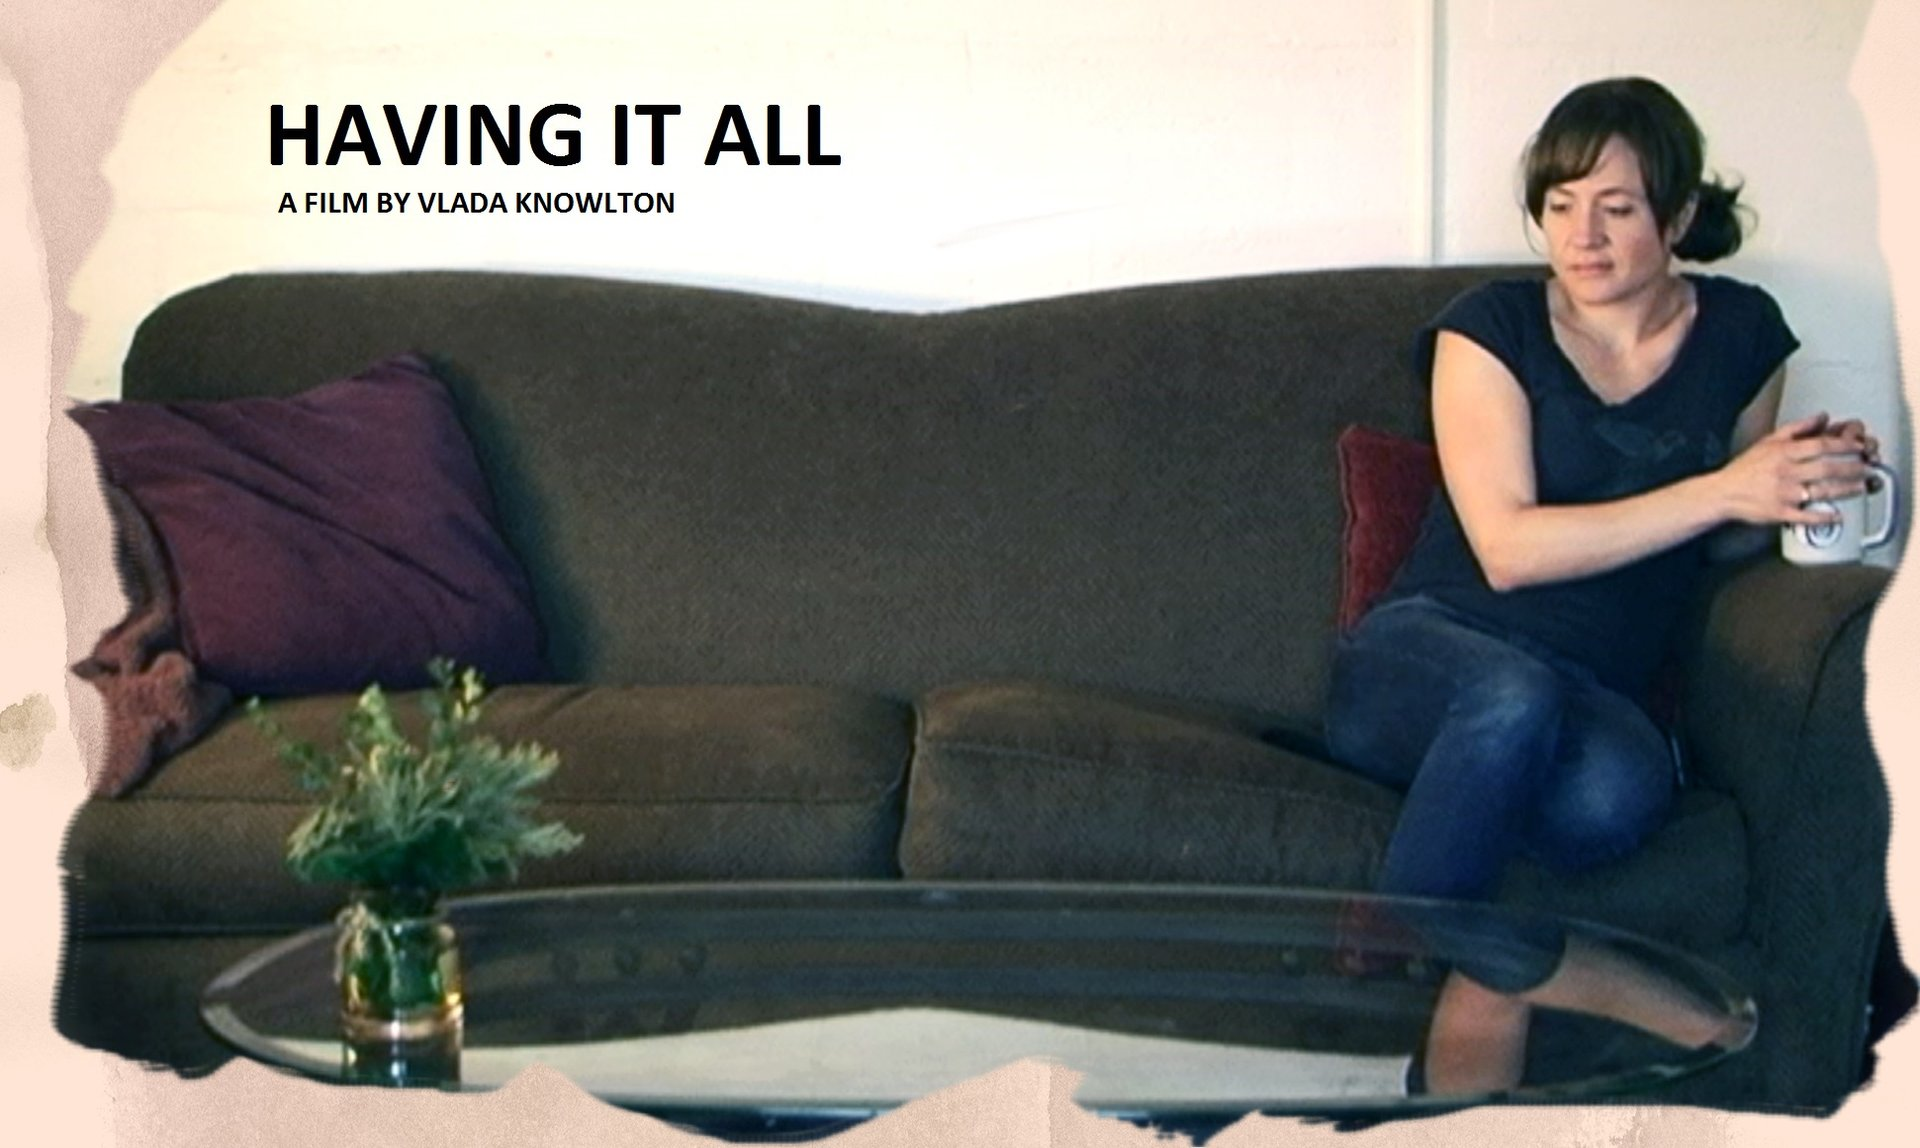 """Having It All"" is a documentary directed by Vlada Knowlton."